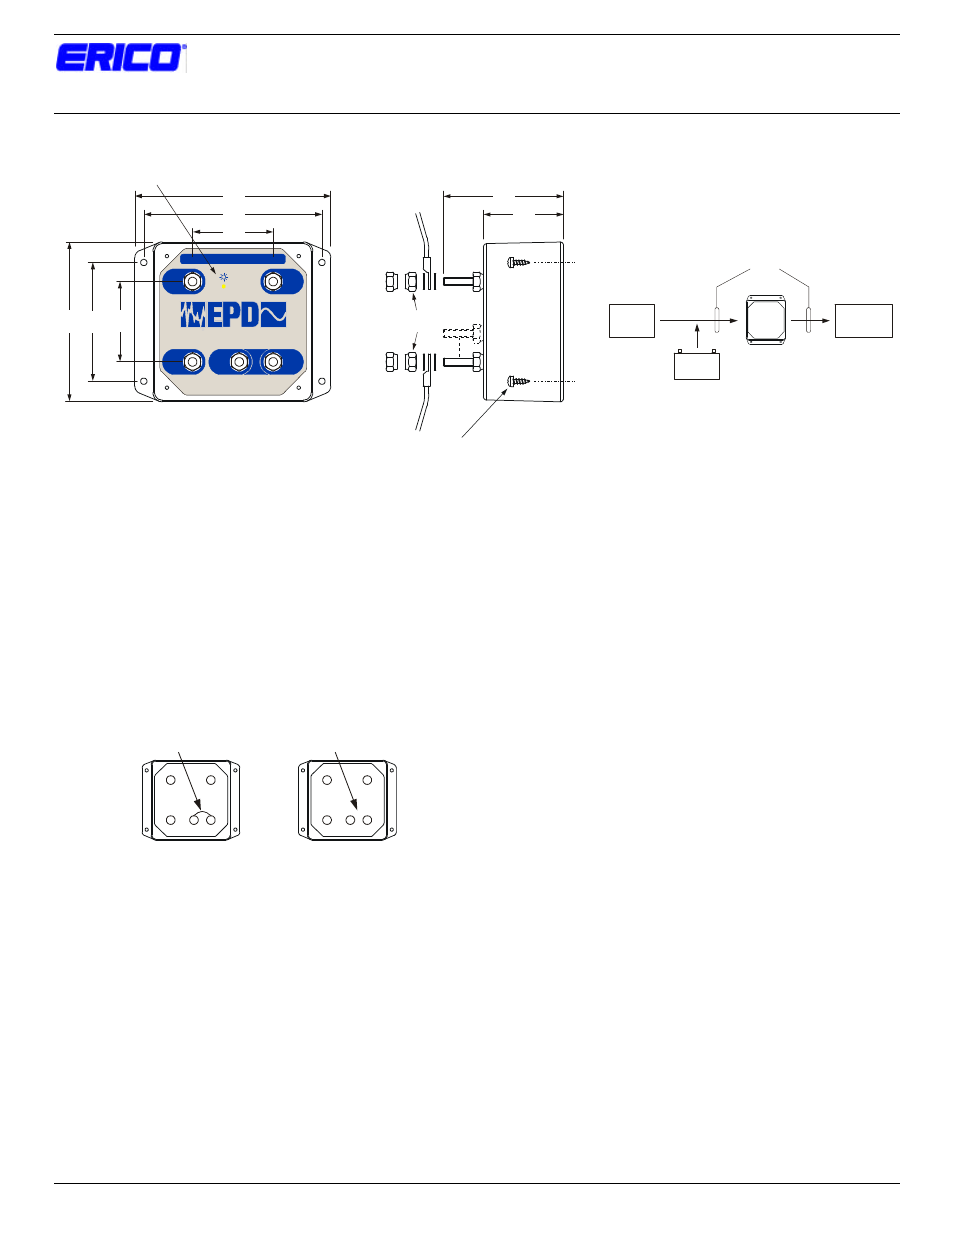 Erico Epd1224ataar 12 24vdc 30a Secondary Surge Protector User Electrical Wiring Manual 1 Page